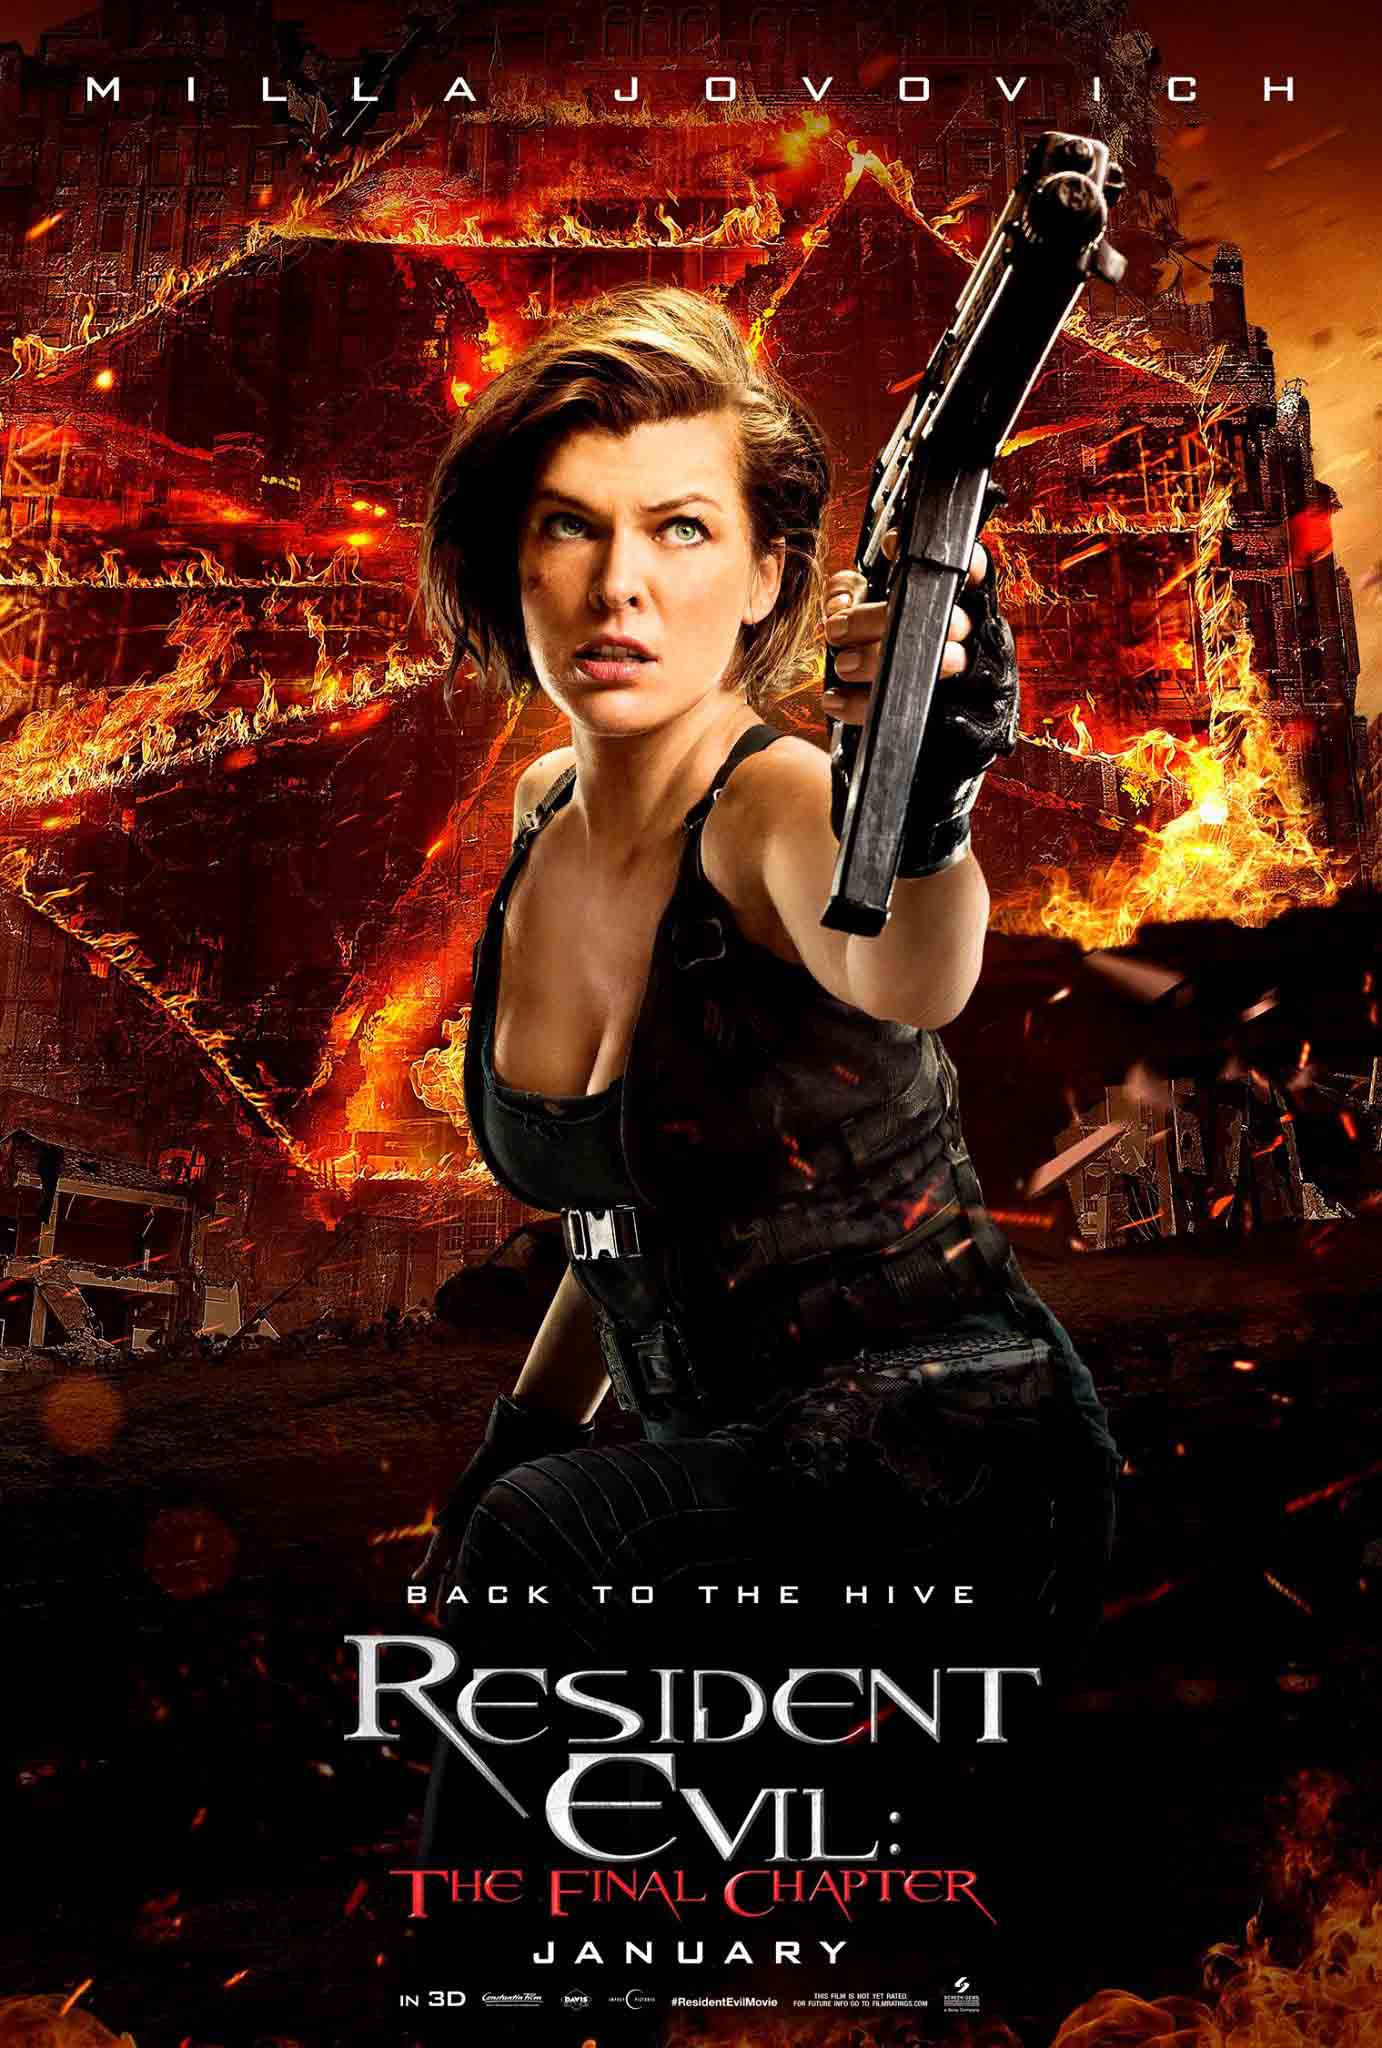 Milla jovovich resident evil the final pictures